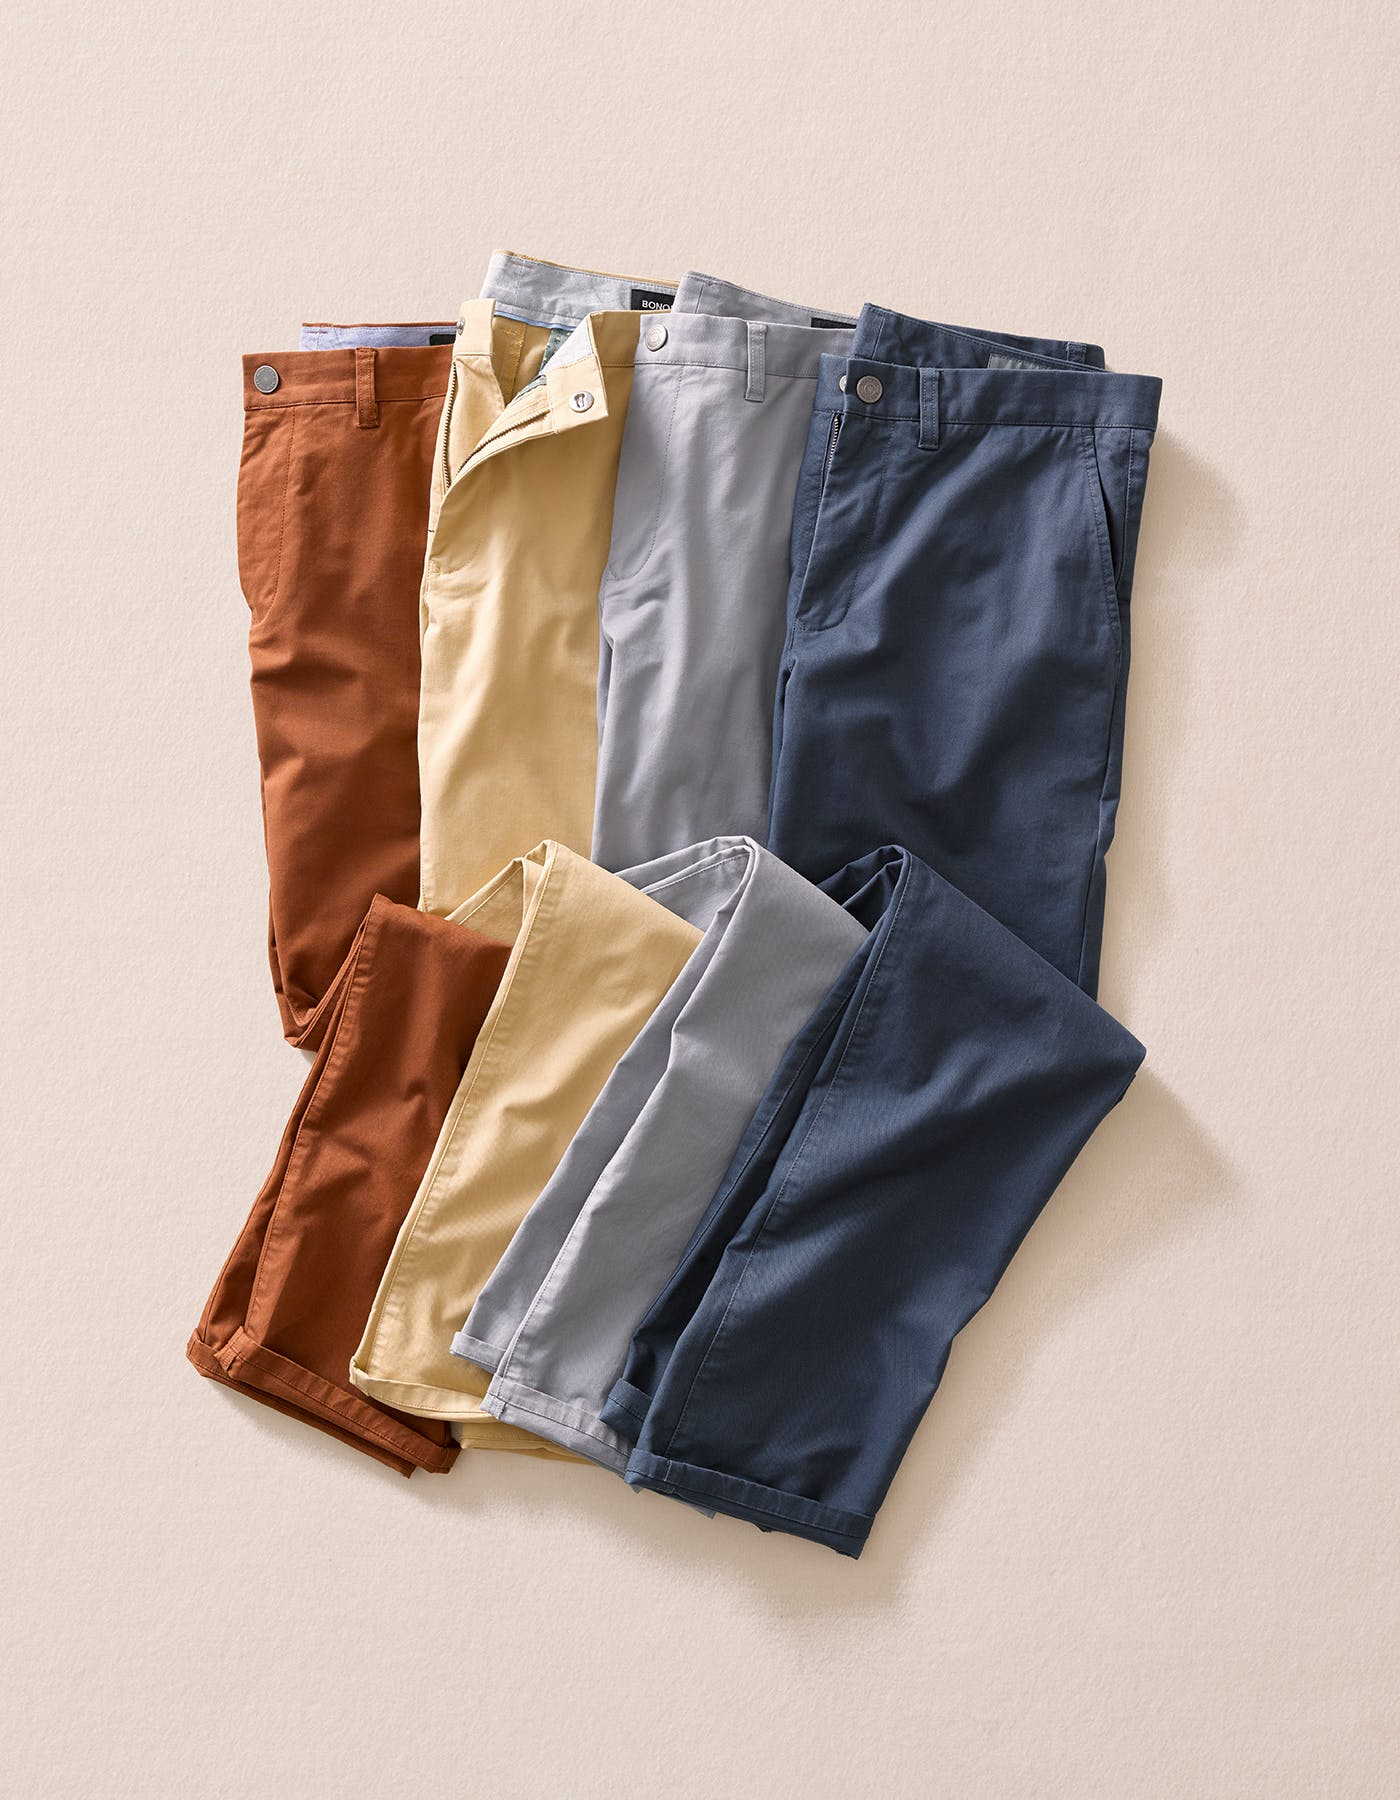 Image of different color chinos next to each other